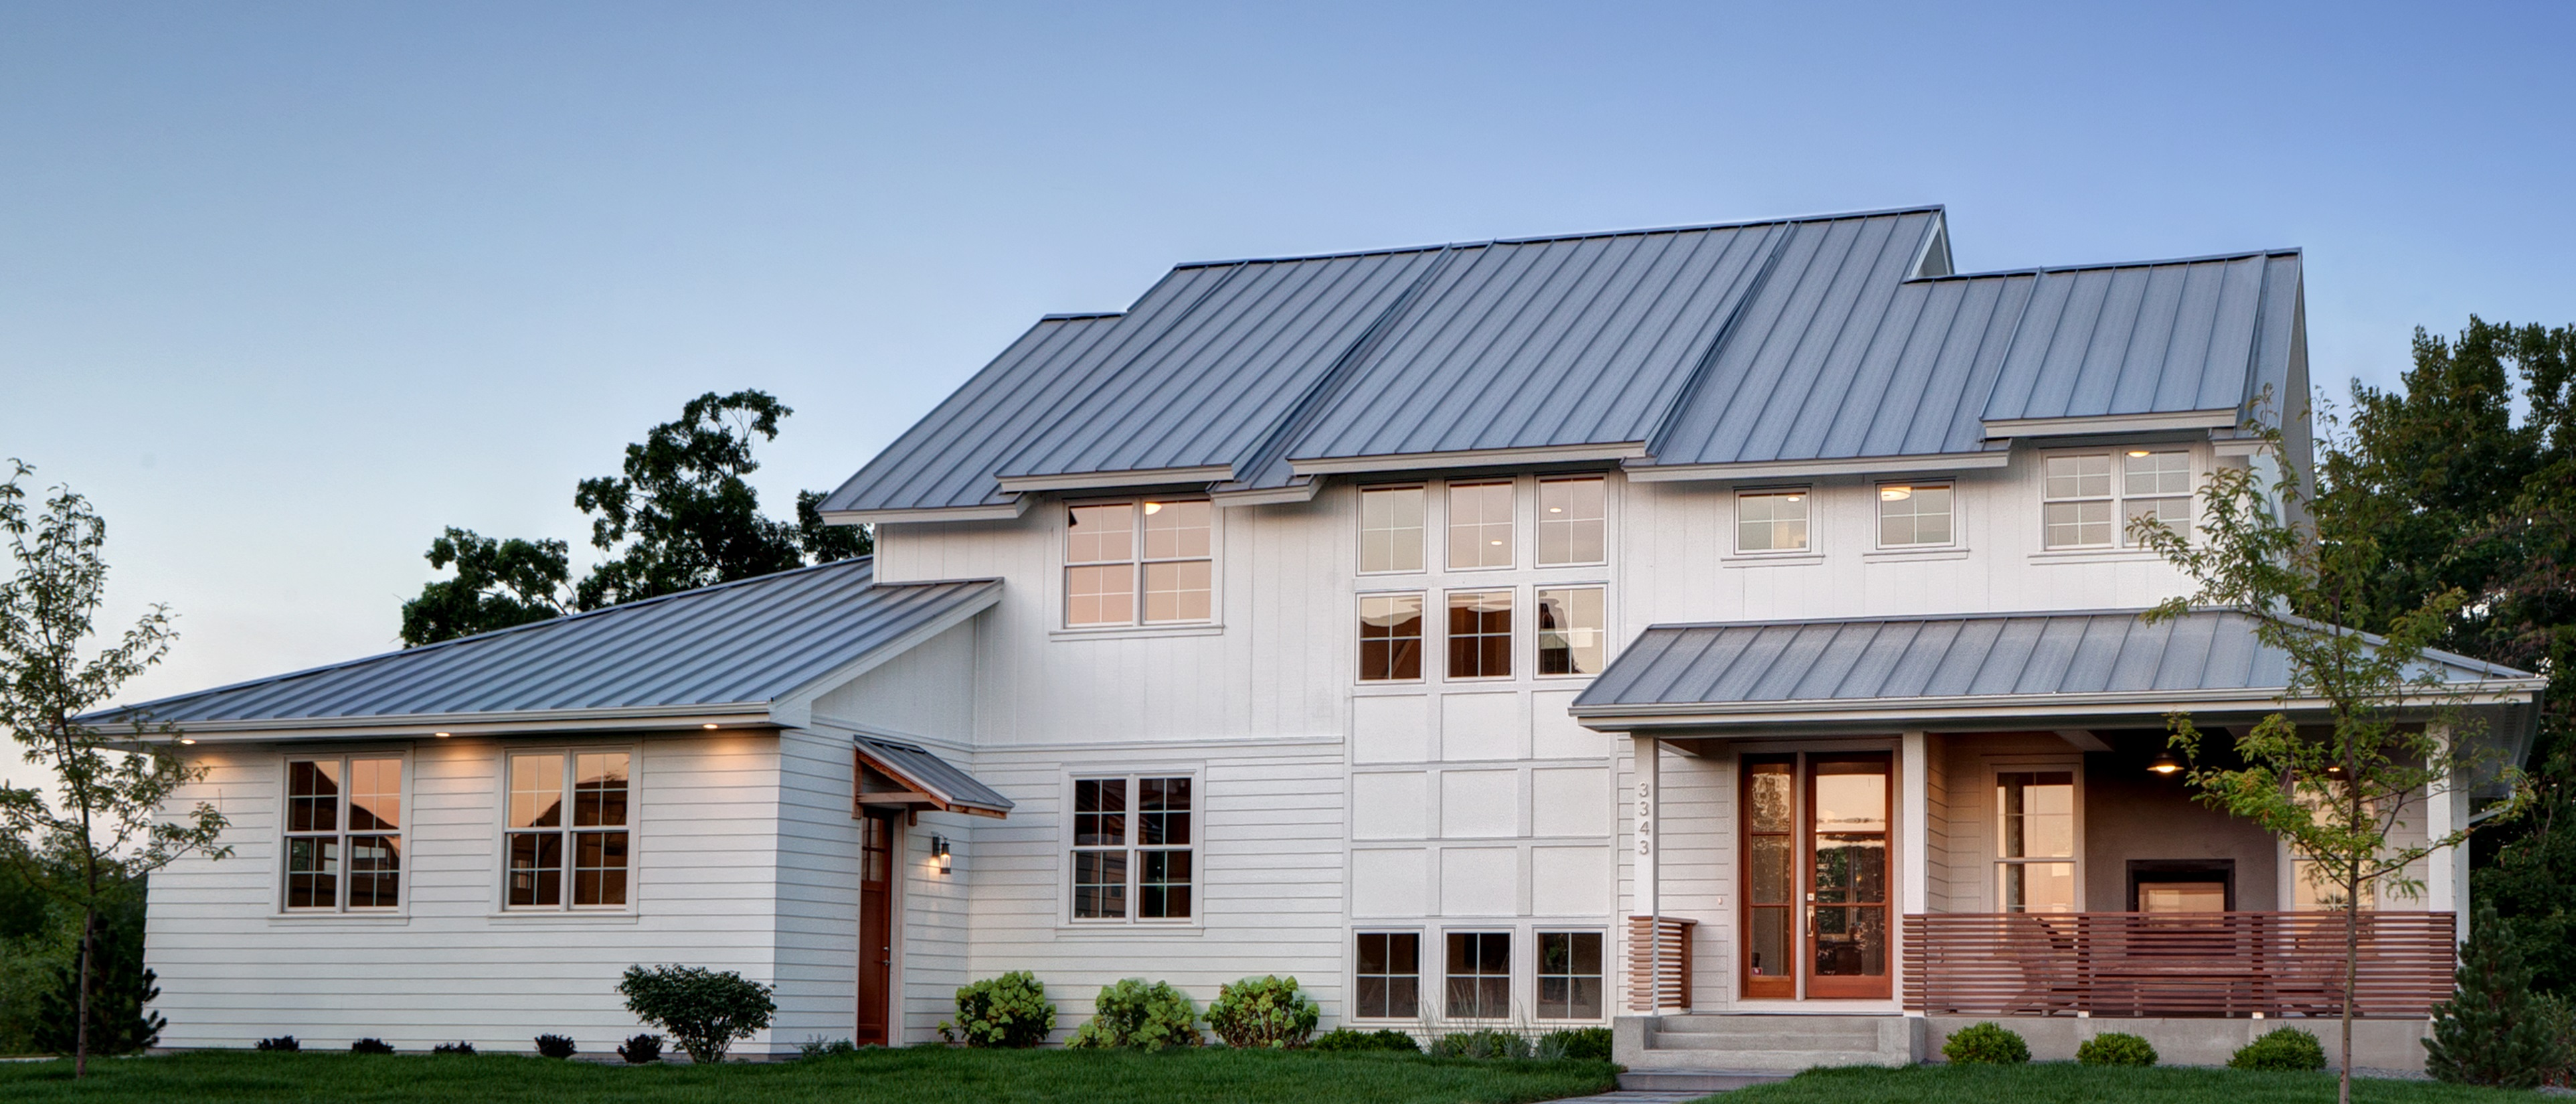 Roofing_material_Standing_seam_steel_roof